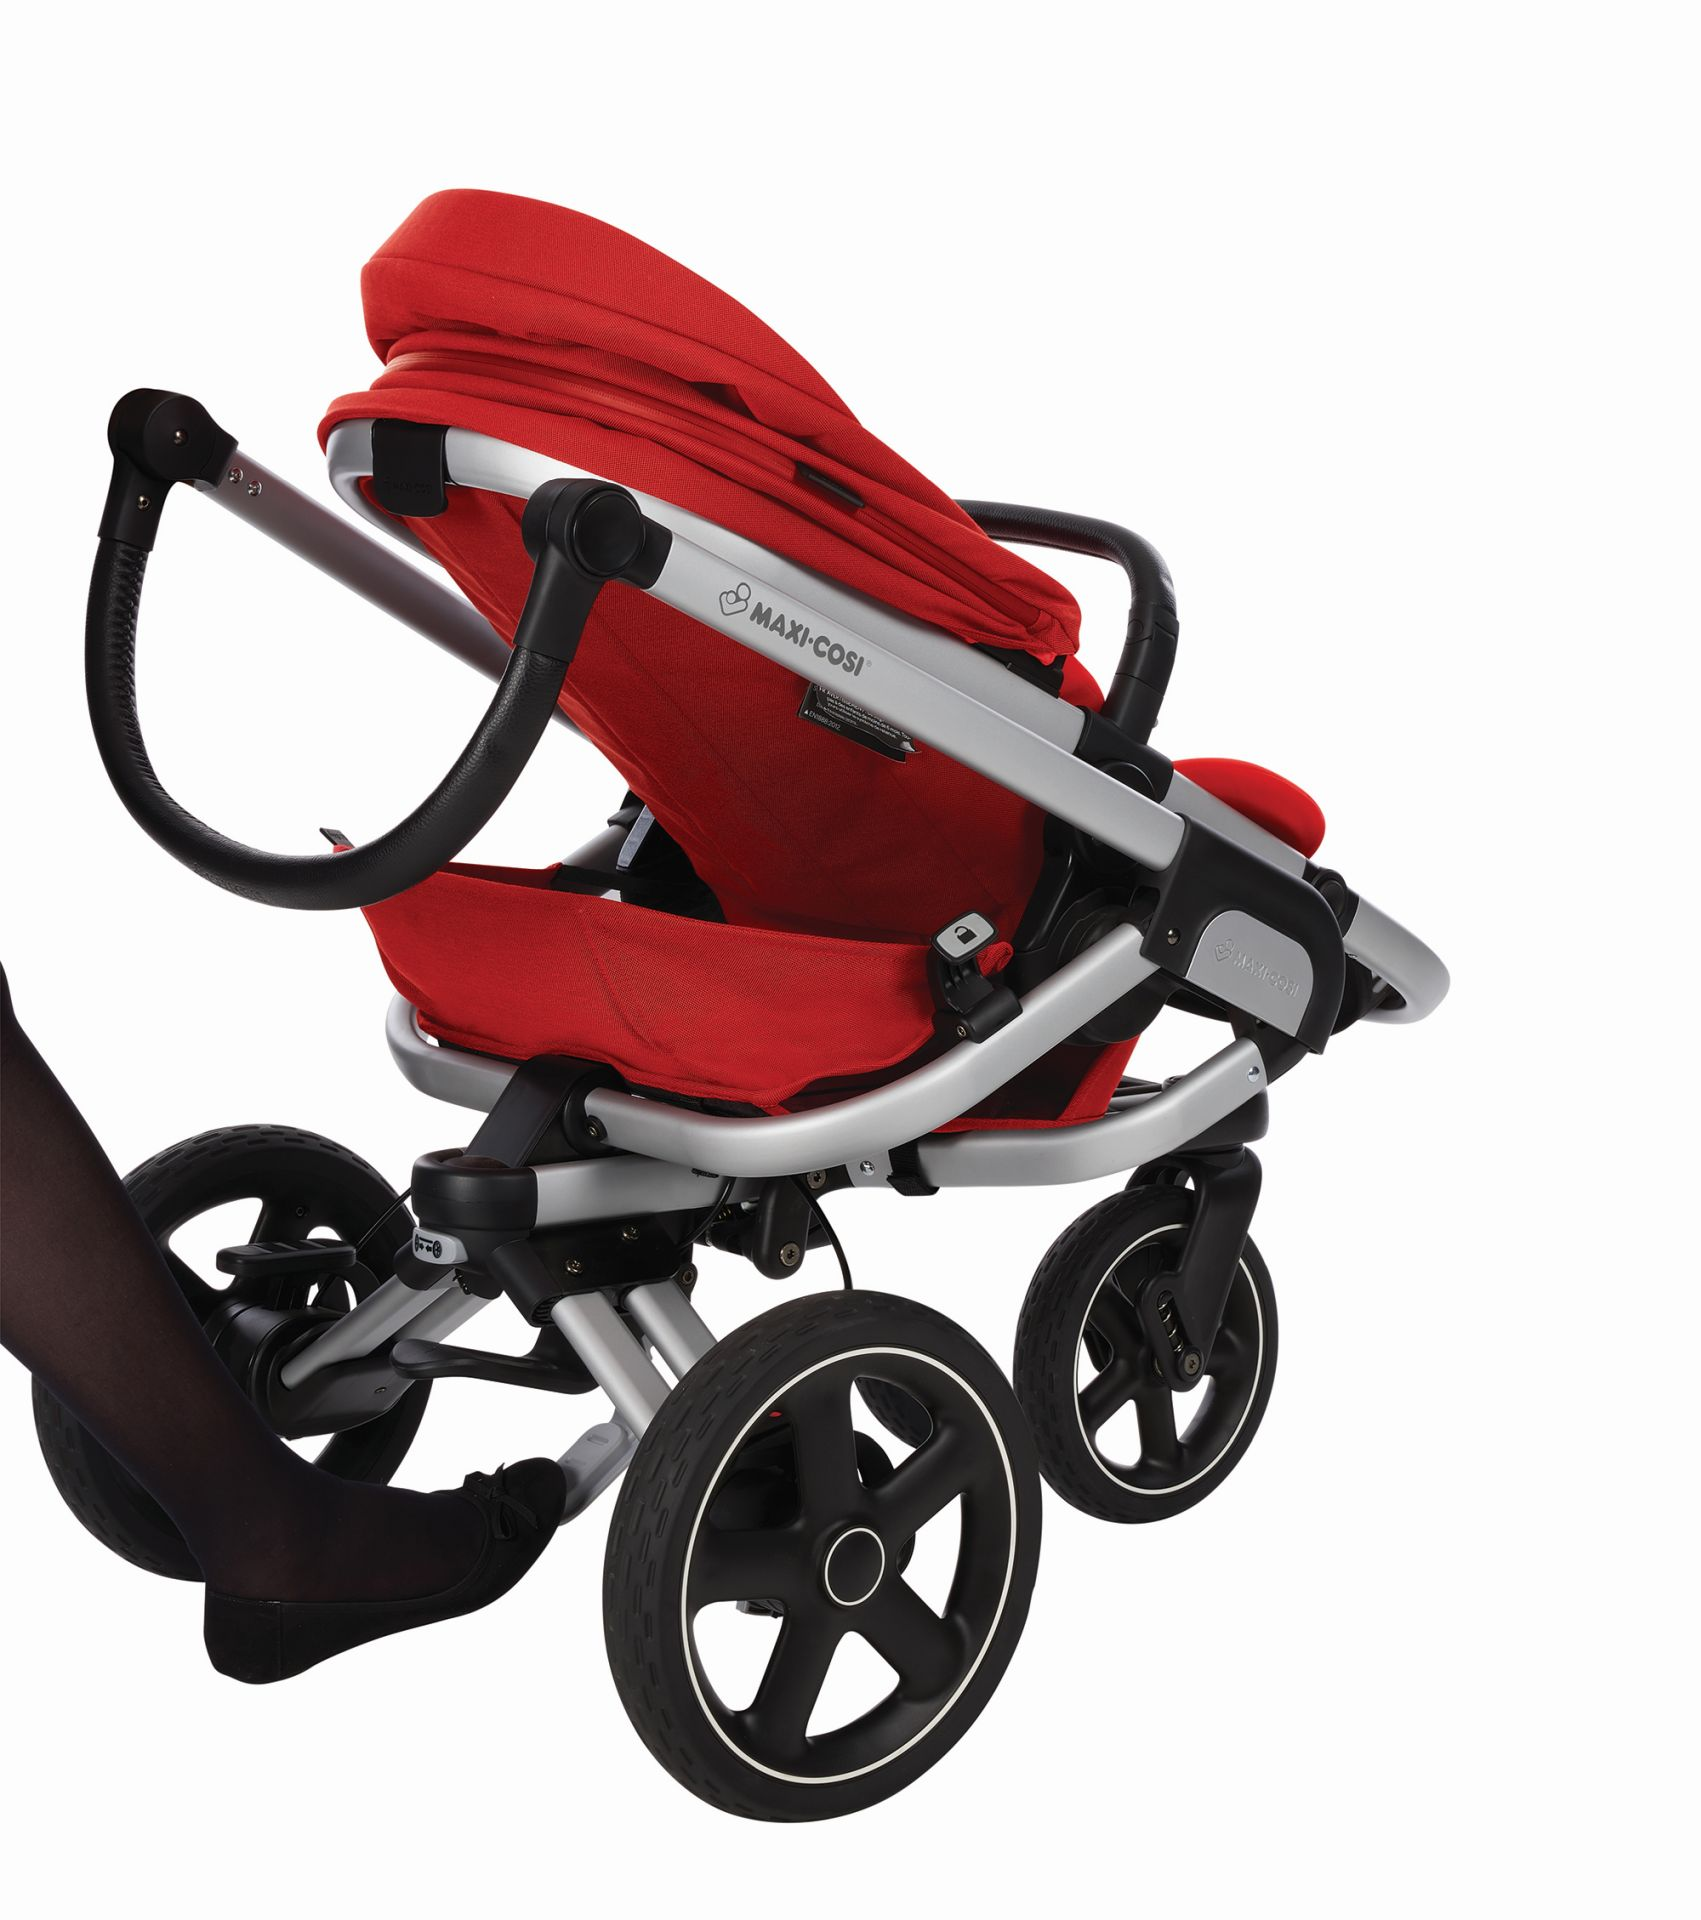 maxi cosi 3 wheels stroller nova 2018 vivid red buy at. Black Bedroom Furniture Sets. Home Design Ideas